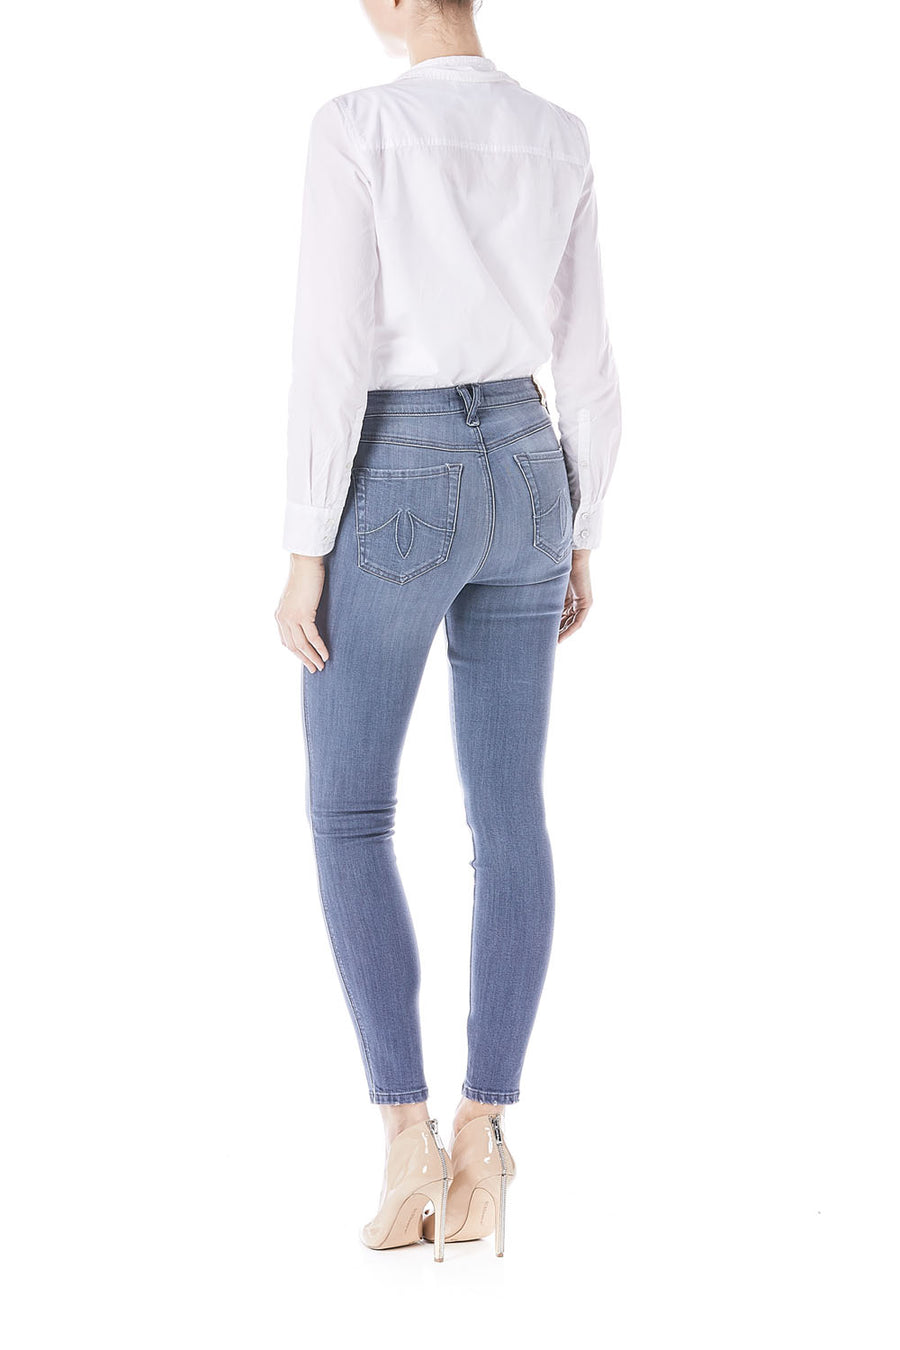 Jane Super Skinny - level99jeans